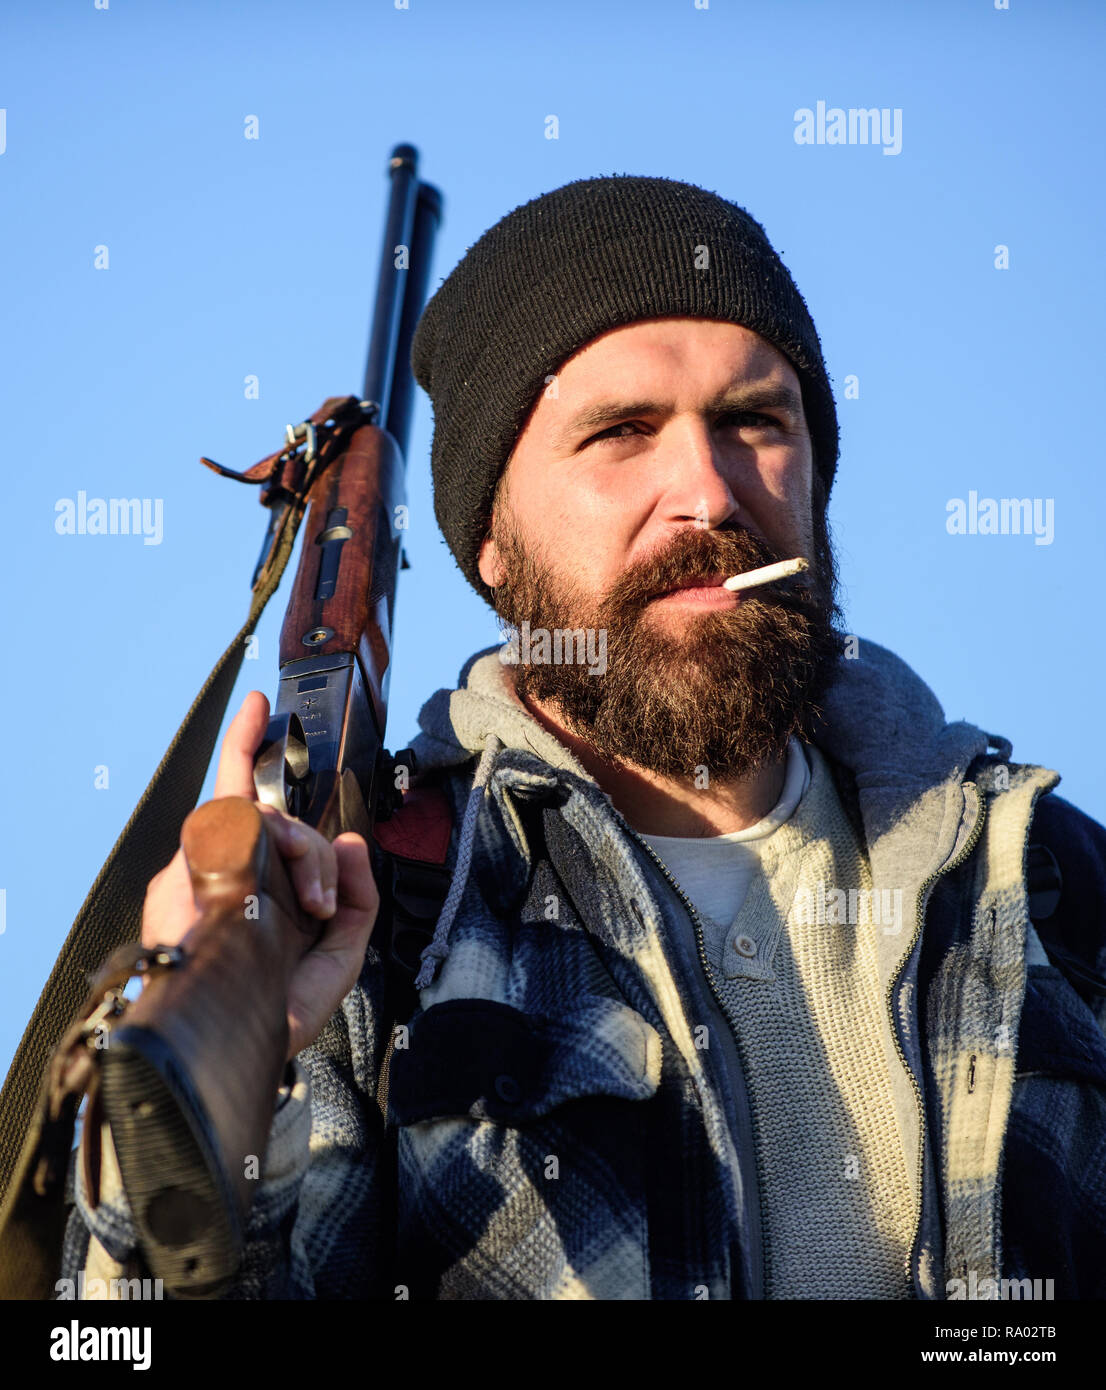 Hunter with rifle gun close up. Guy bearded hunter spend leisure hunting and smoking. Hunting masculine hobby concept. Man brutal bearded guy gamekeeper blue sky background. Brutality and masculinity. - Stock Image